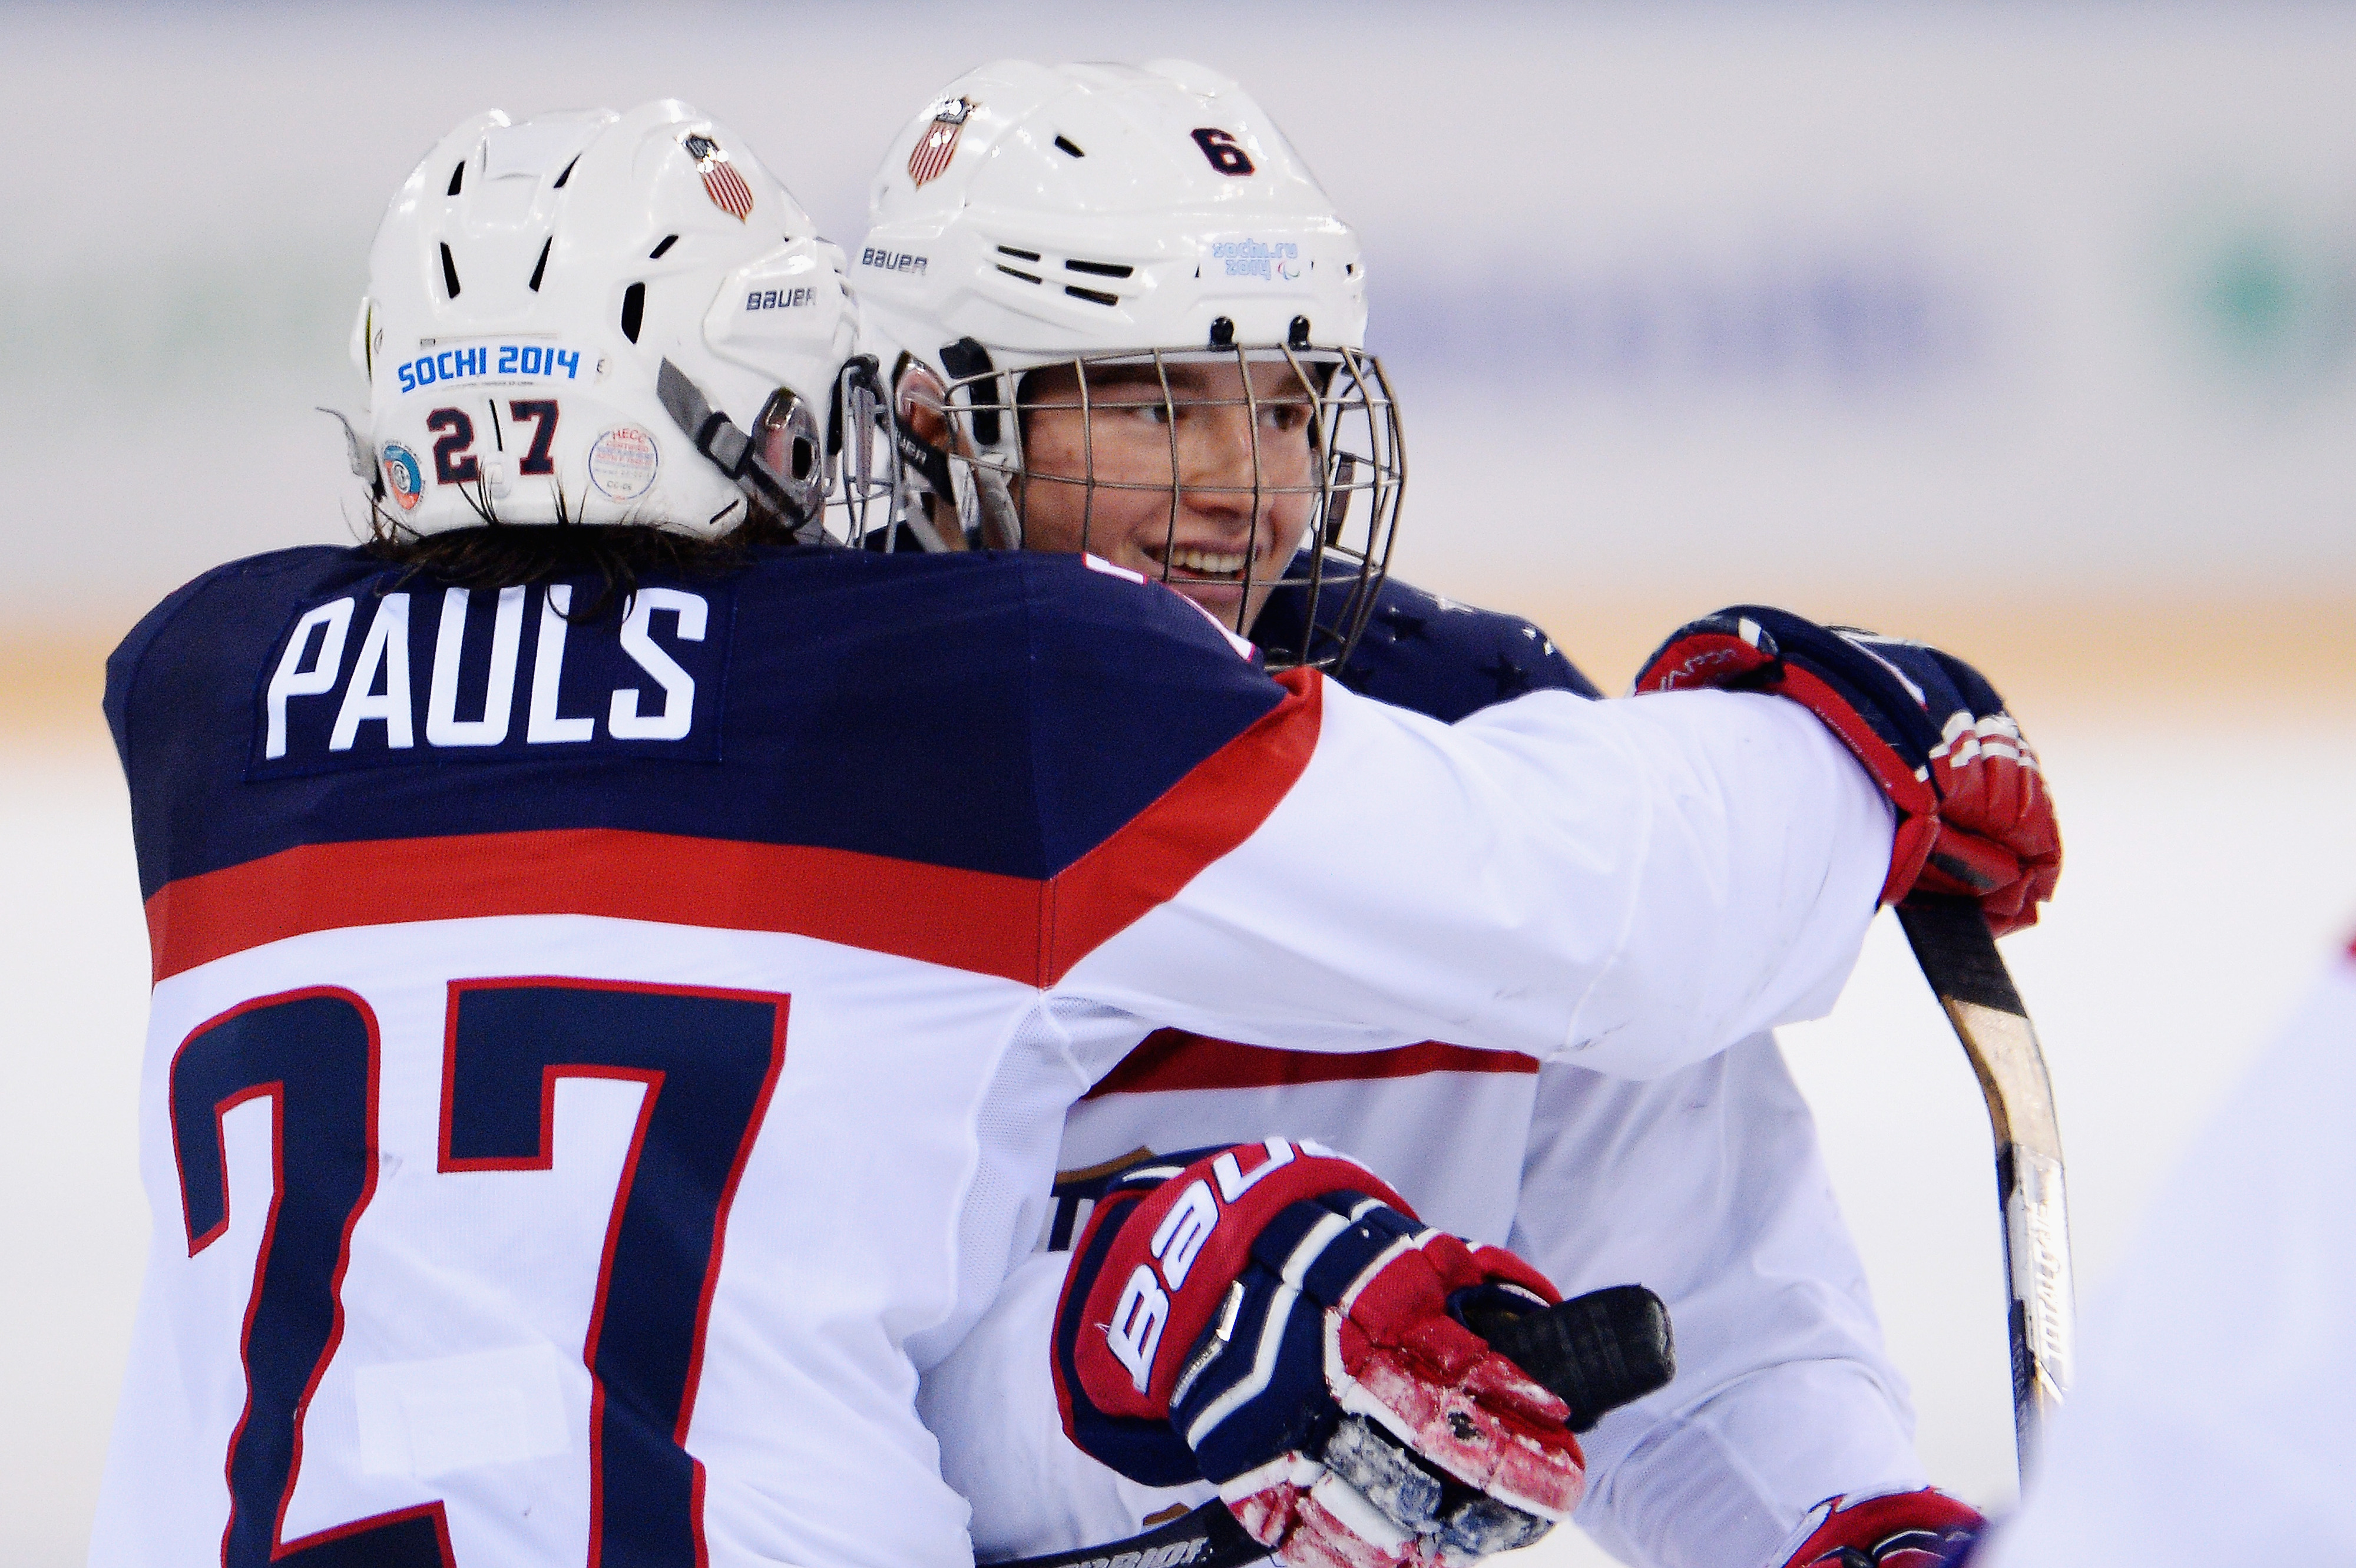 Declan Farmer and Josh Pauls, two-thirds of the youngest line on Team USA's roster, will compete for gold tomorrow at the Winter Paralympics in Sochi.